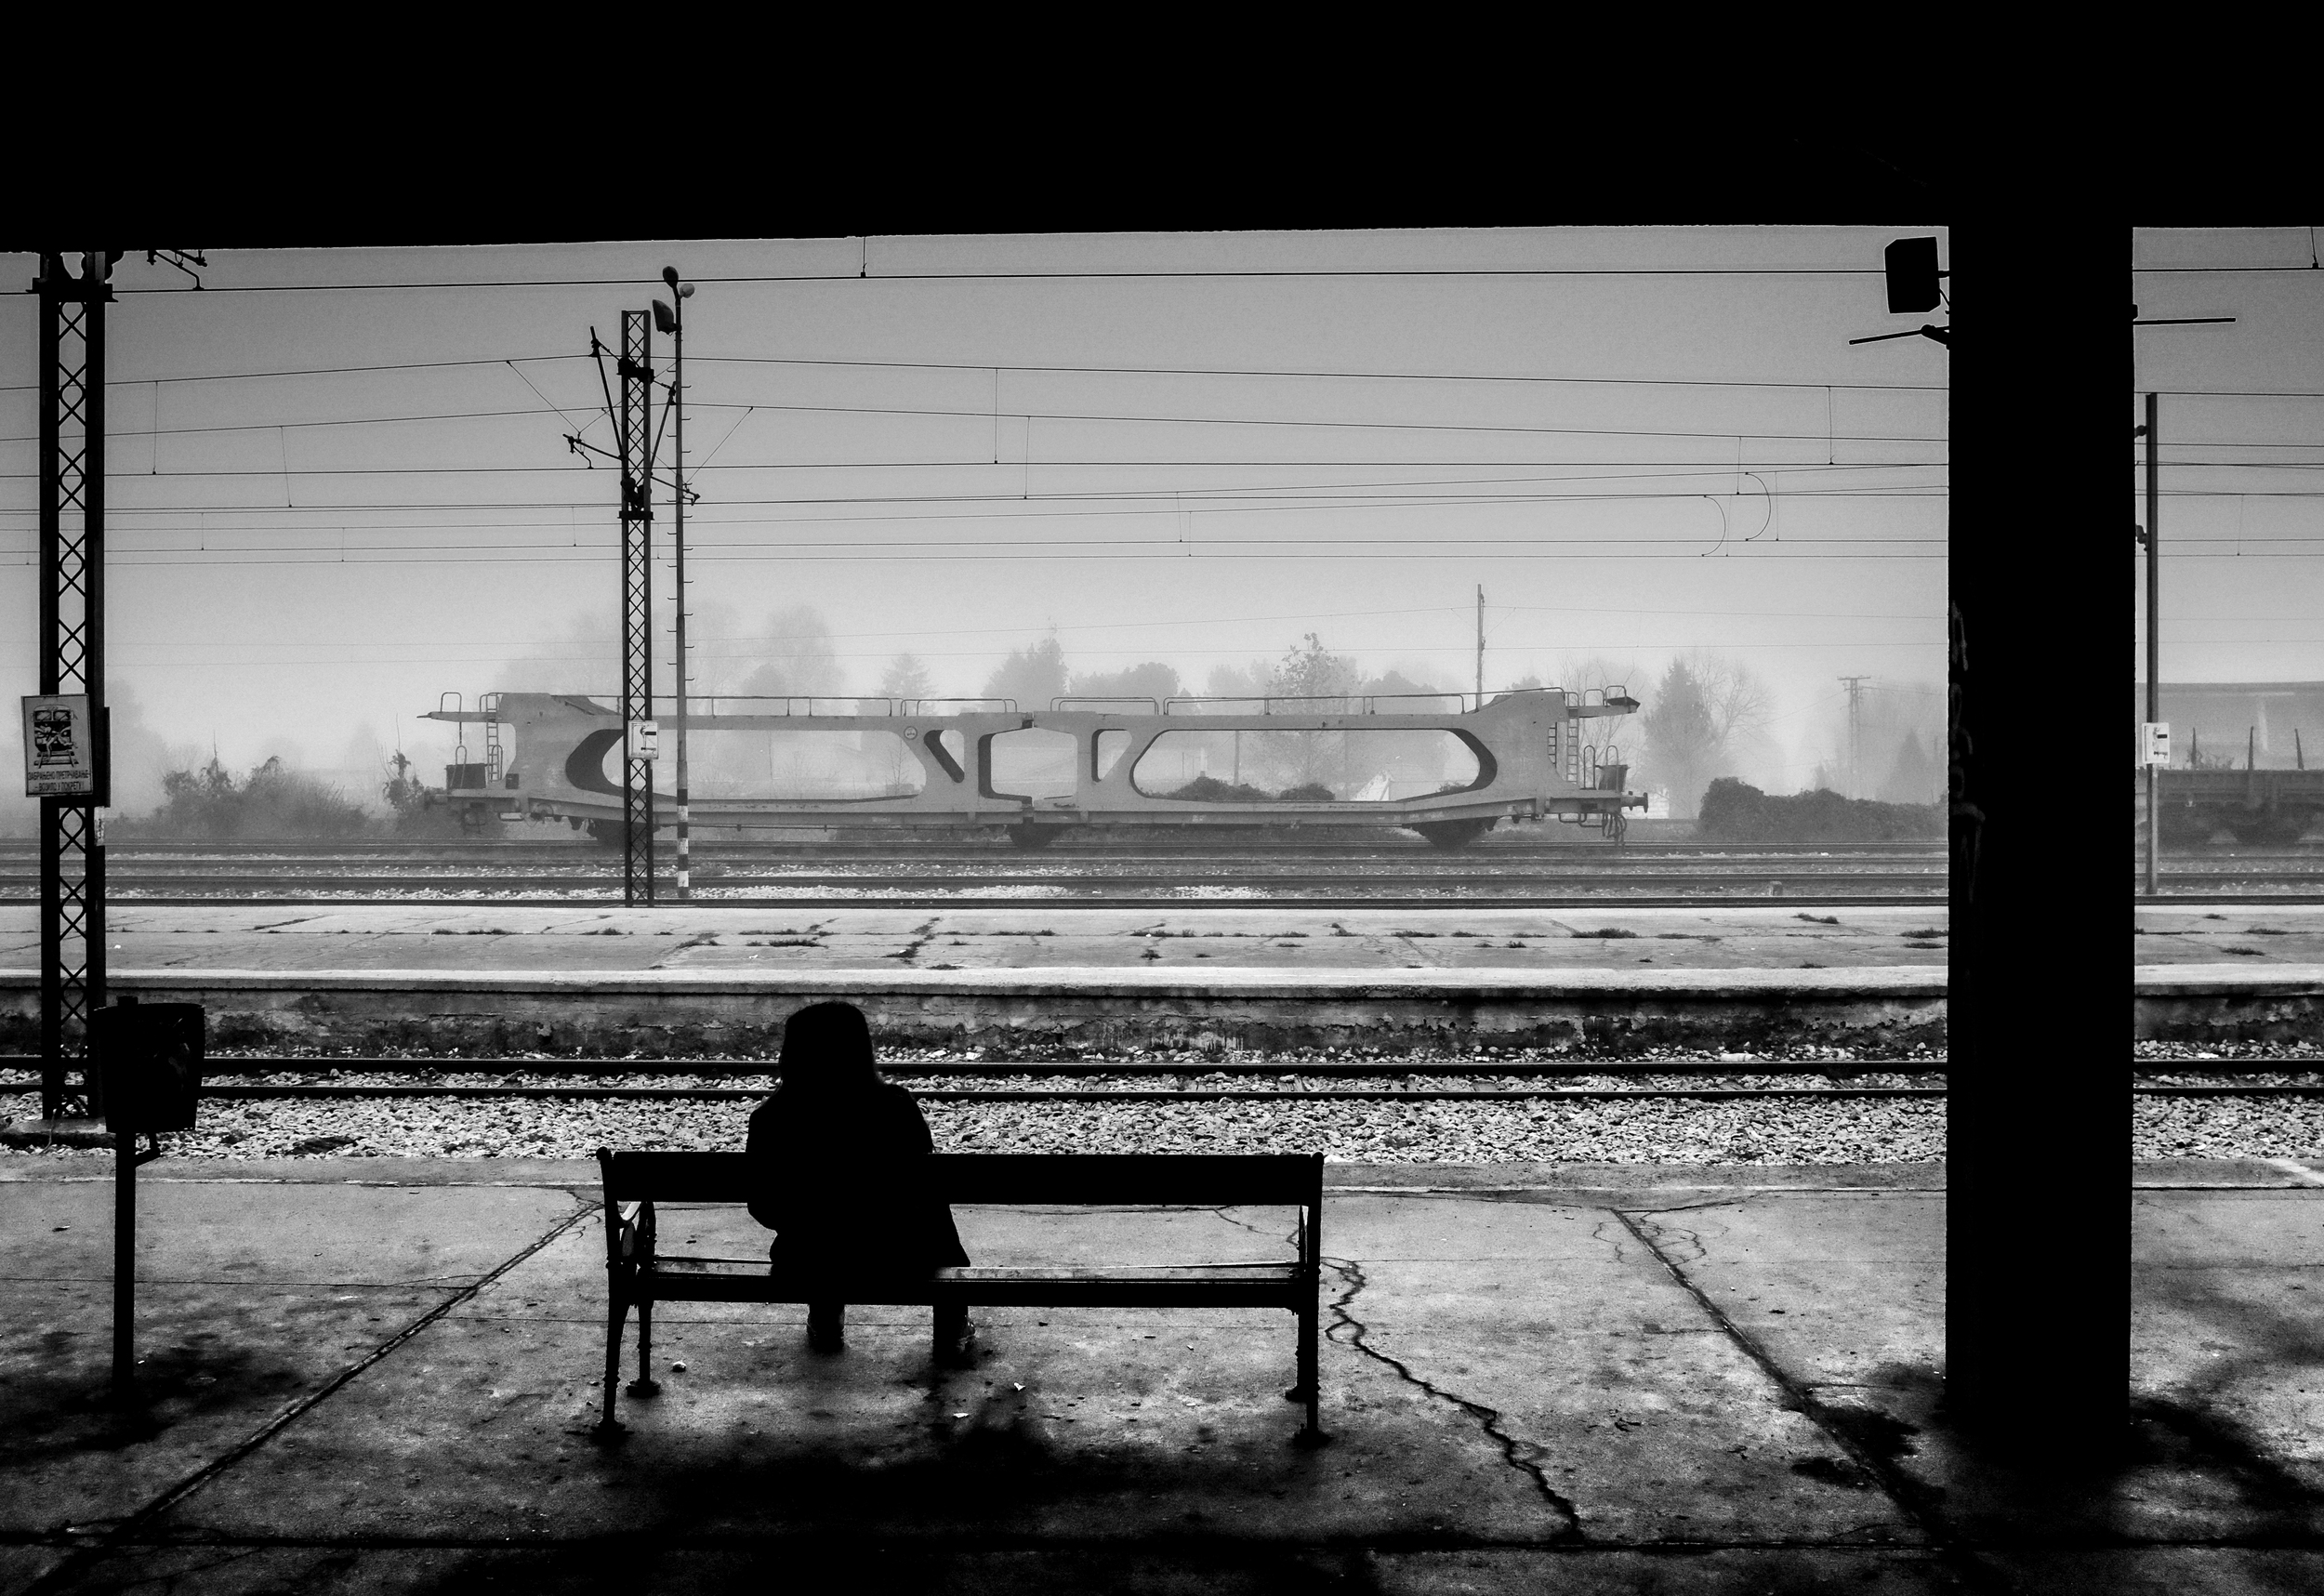 waiting for train that never comes